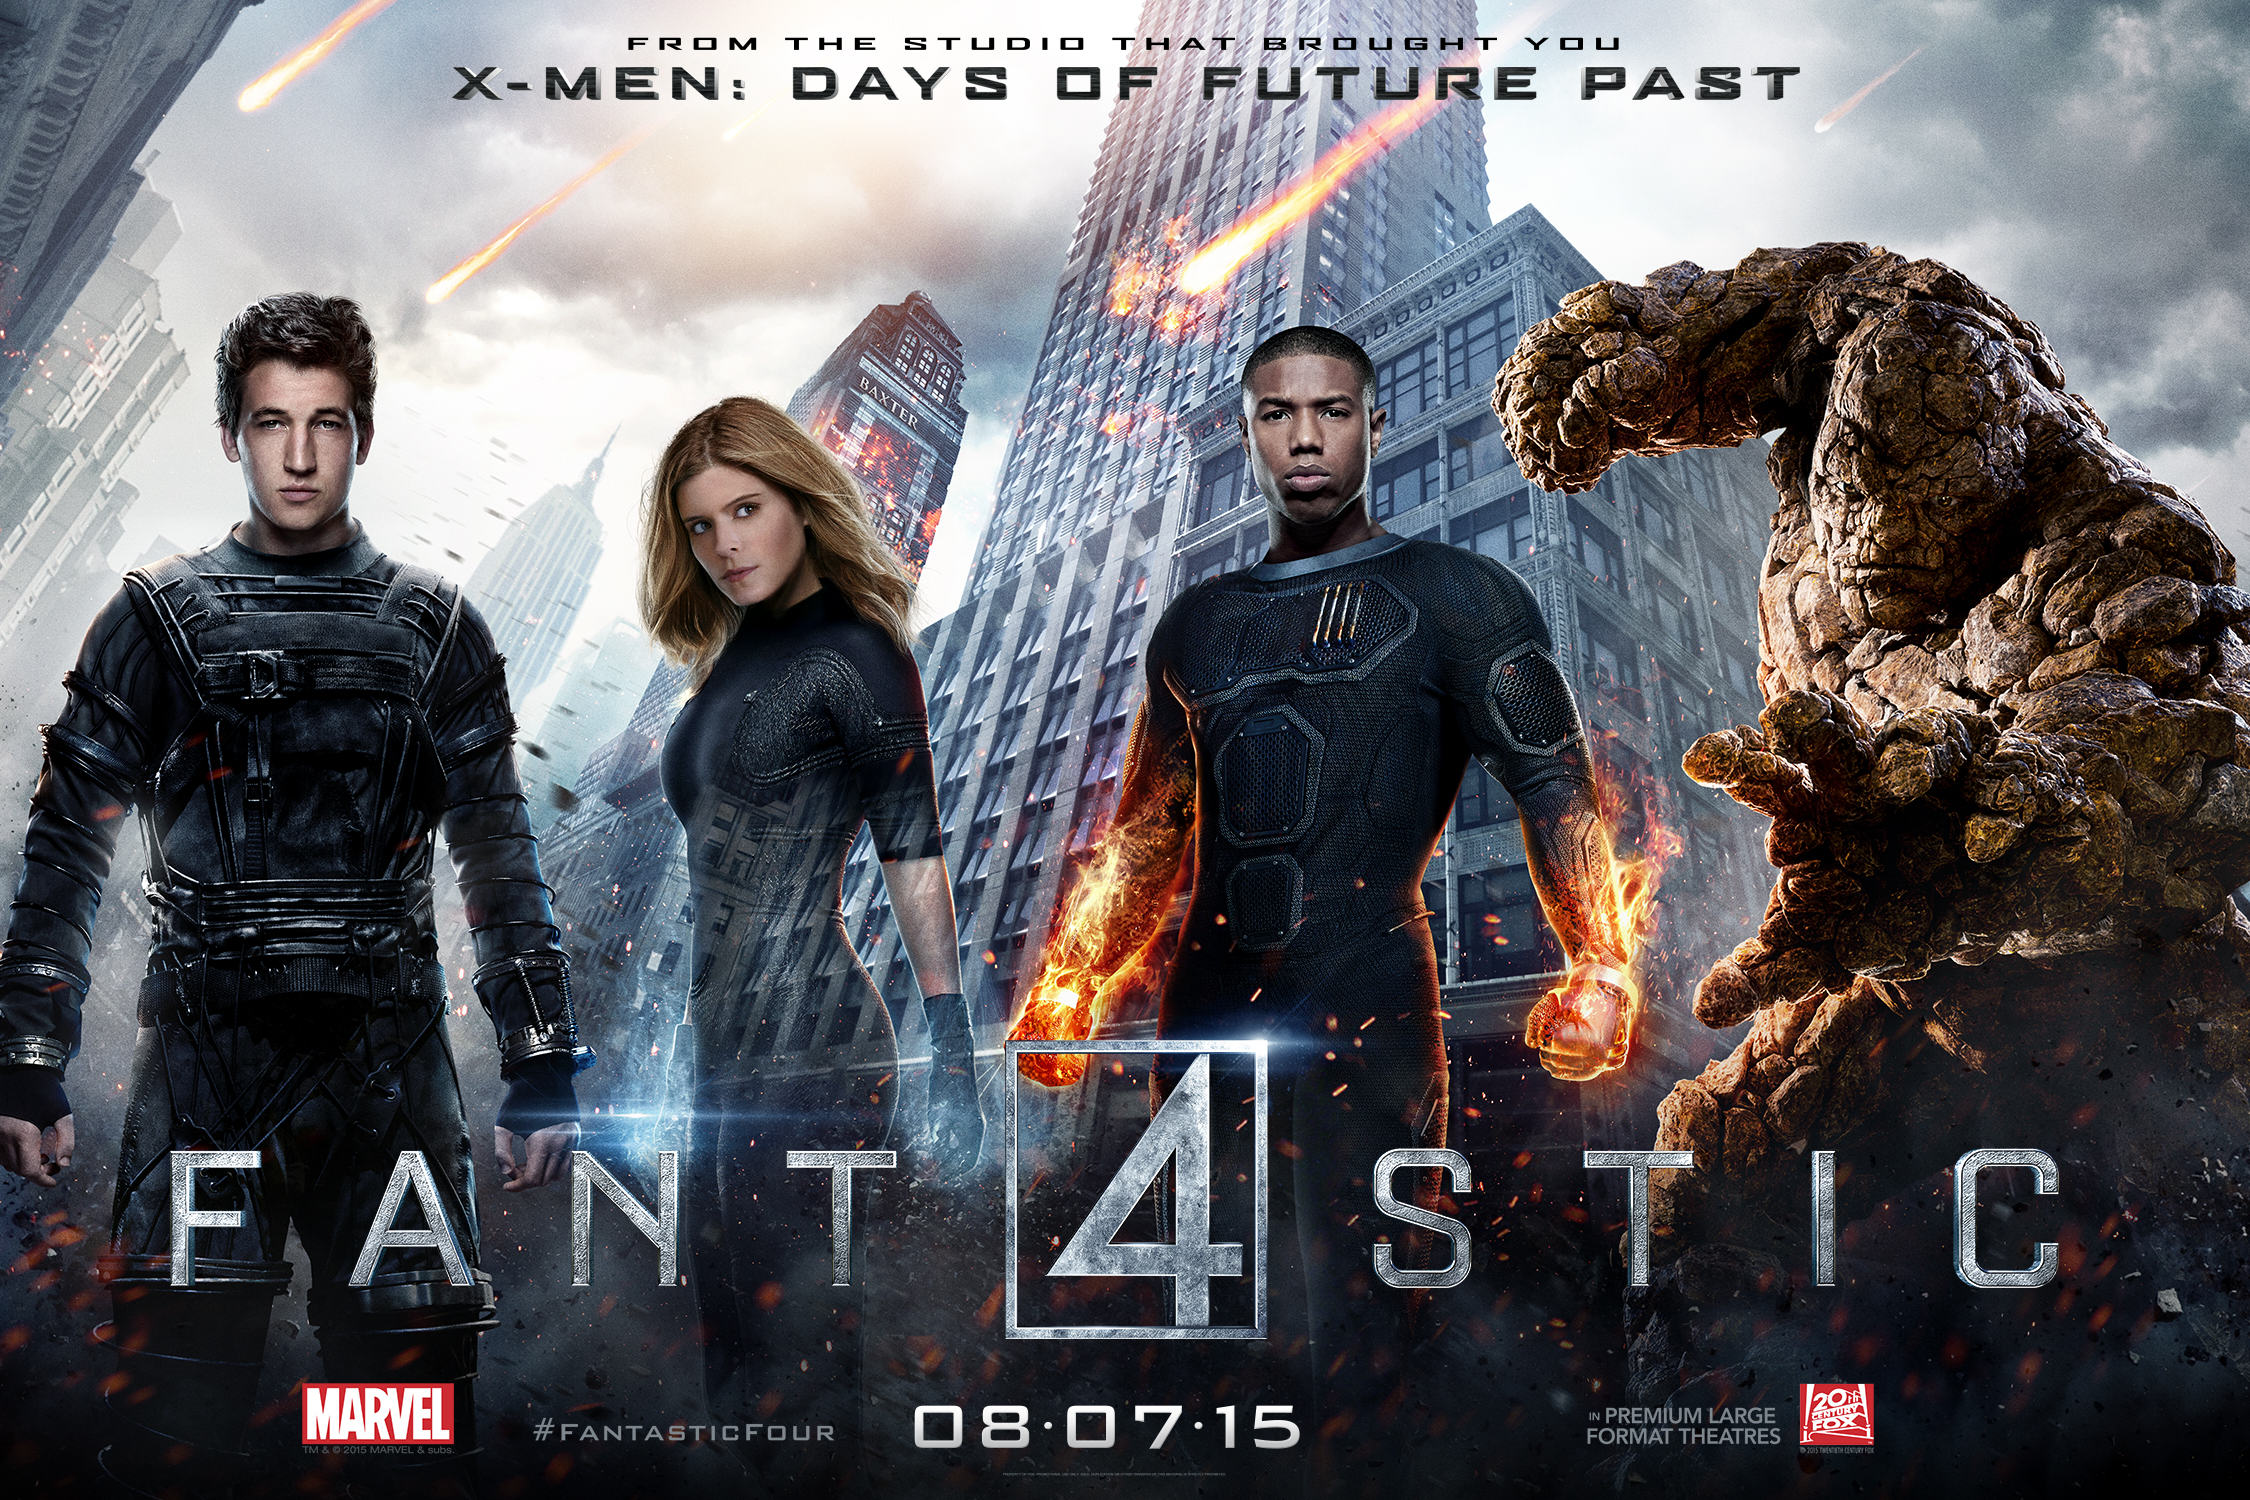 Fantastic Four Cast Handle Extremely Awkward Interview Like Pros